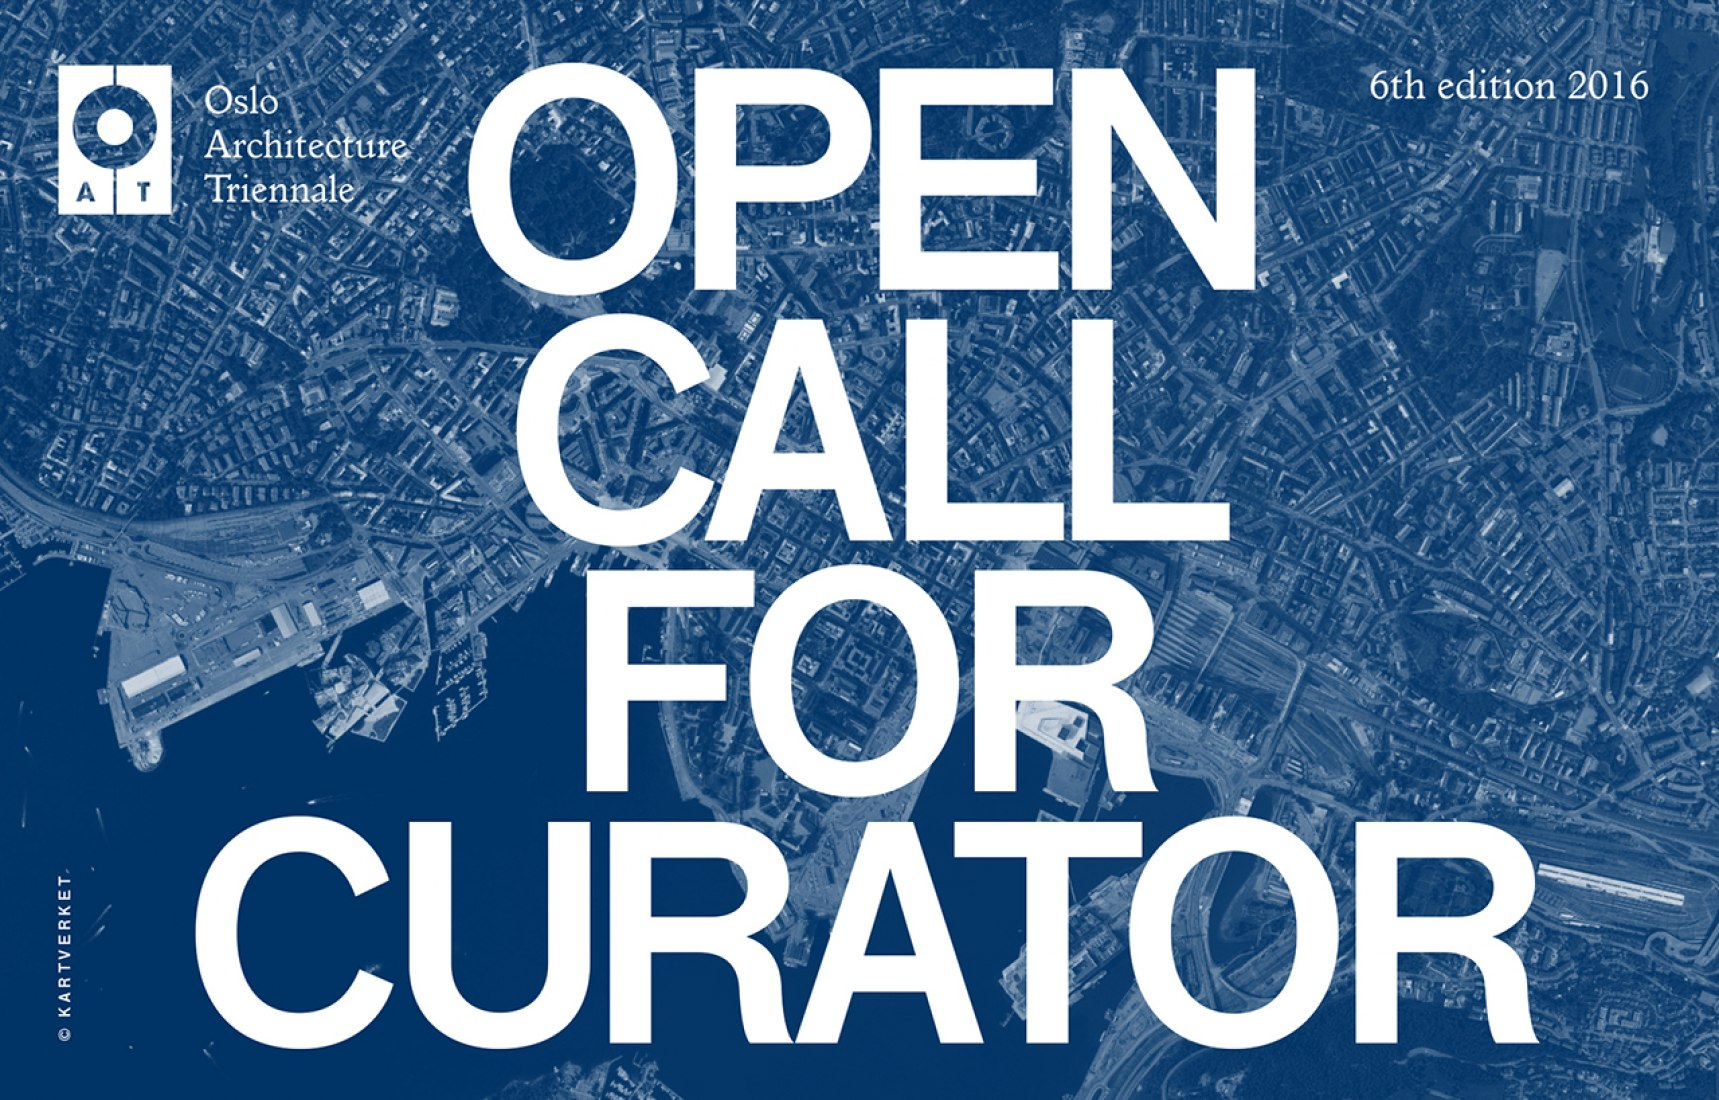 Open Call for Curator at Oslo Architecture Triennale 2016